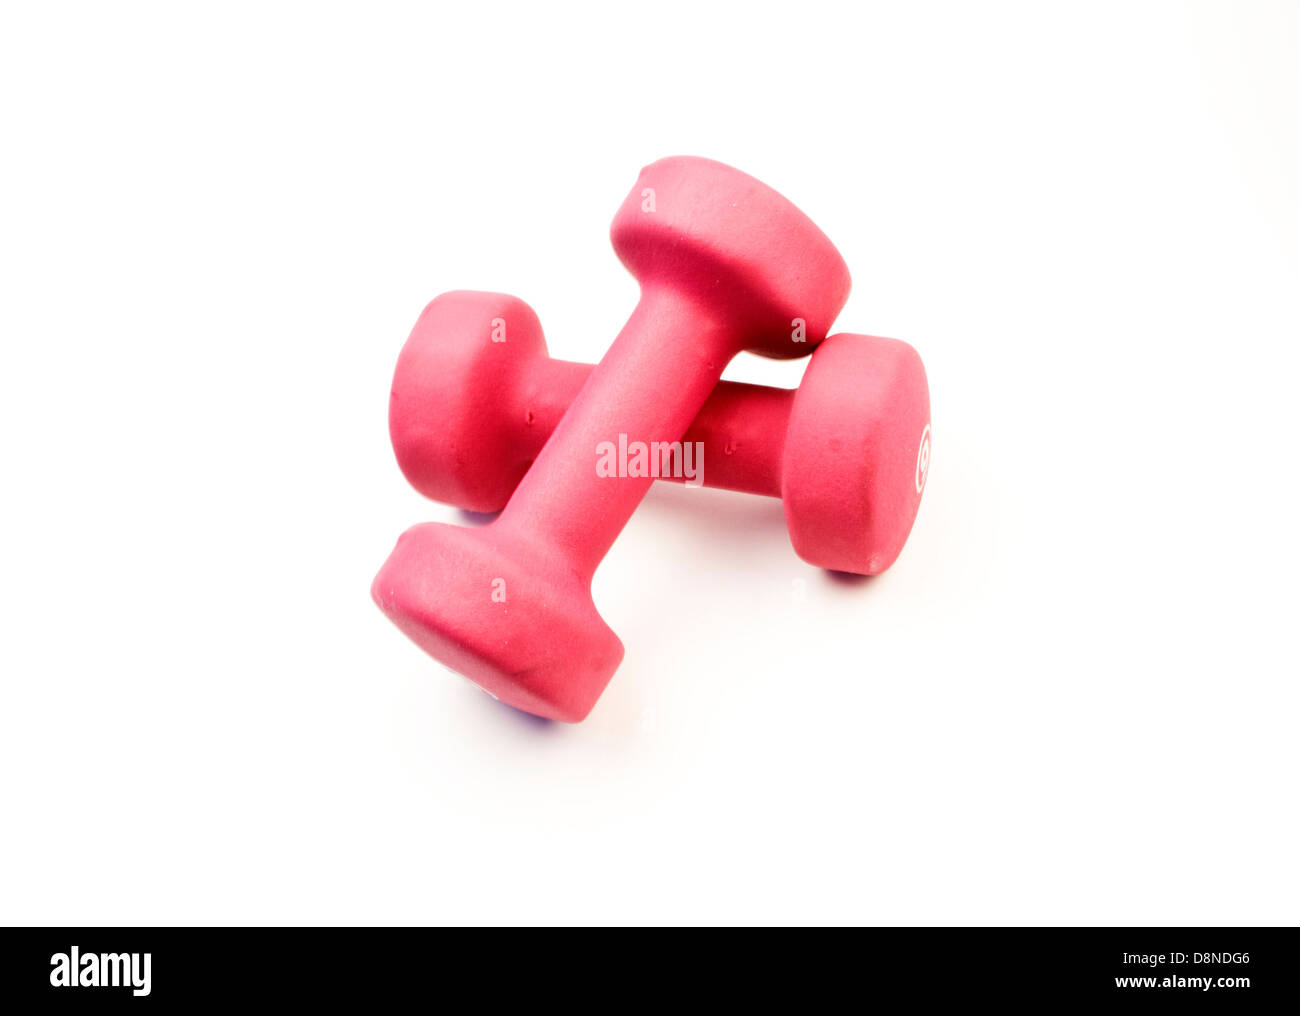 A pair of pink weights is seen against a white background - Stock Image